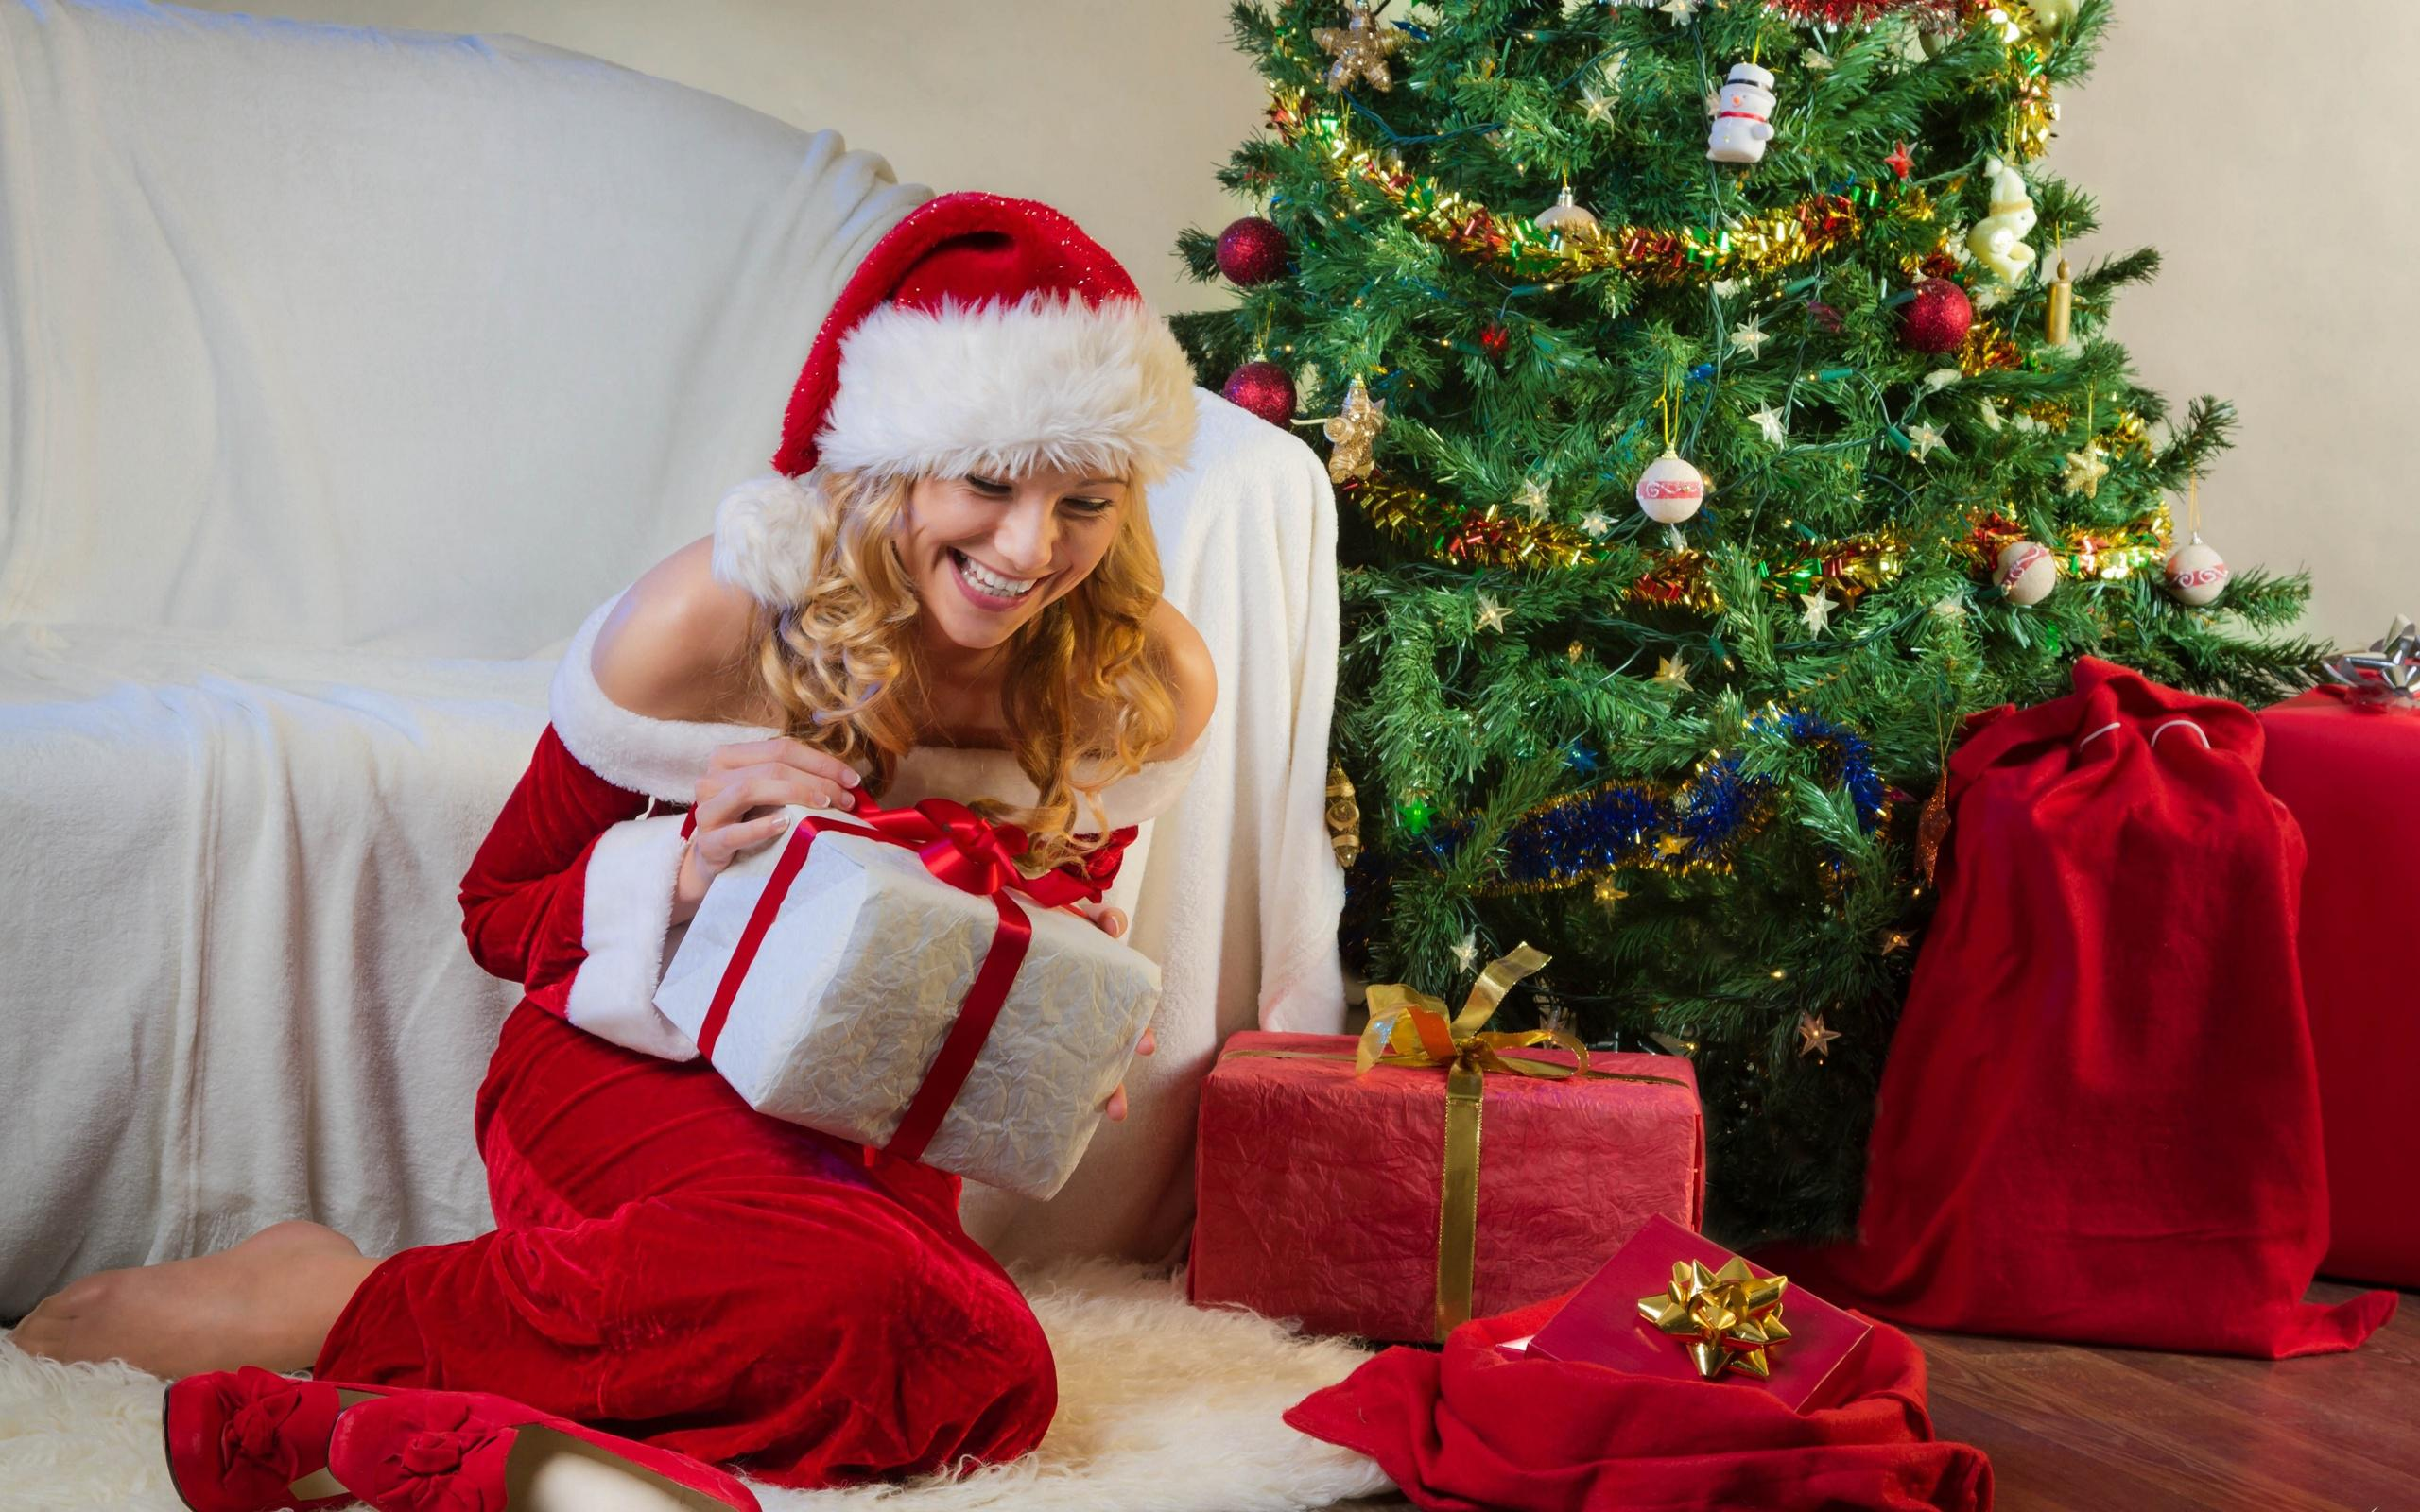 Christmas Presents Wallpapers   Wallpaper High Definition 2560x1600